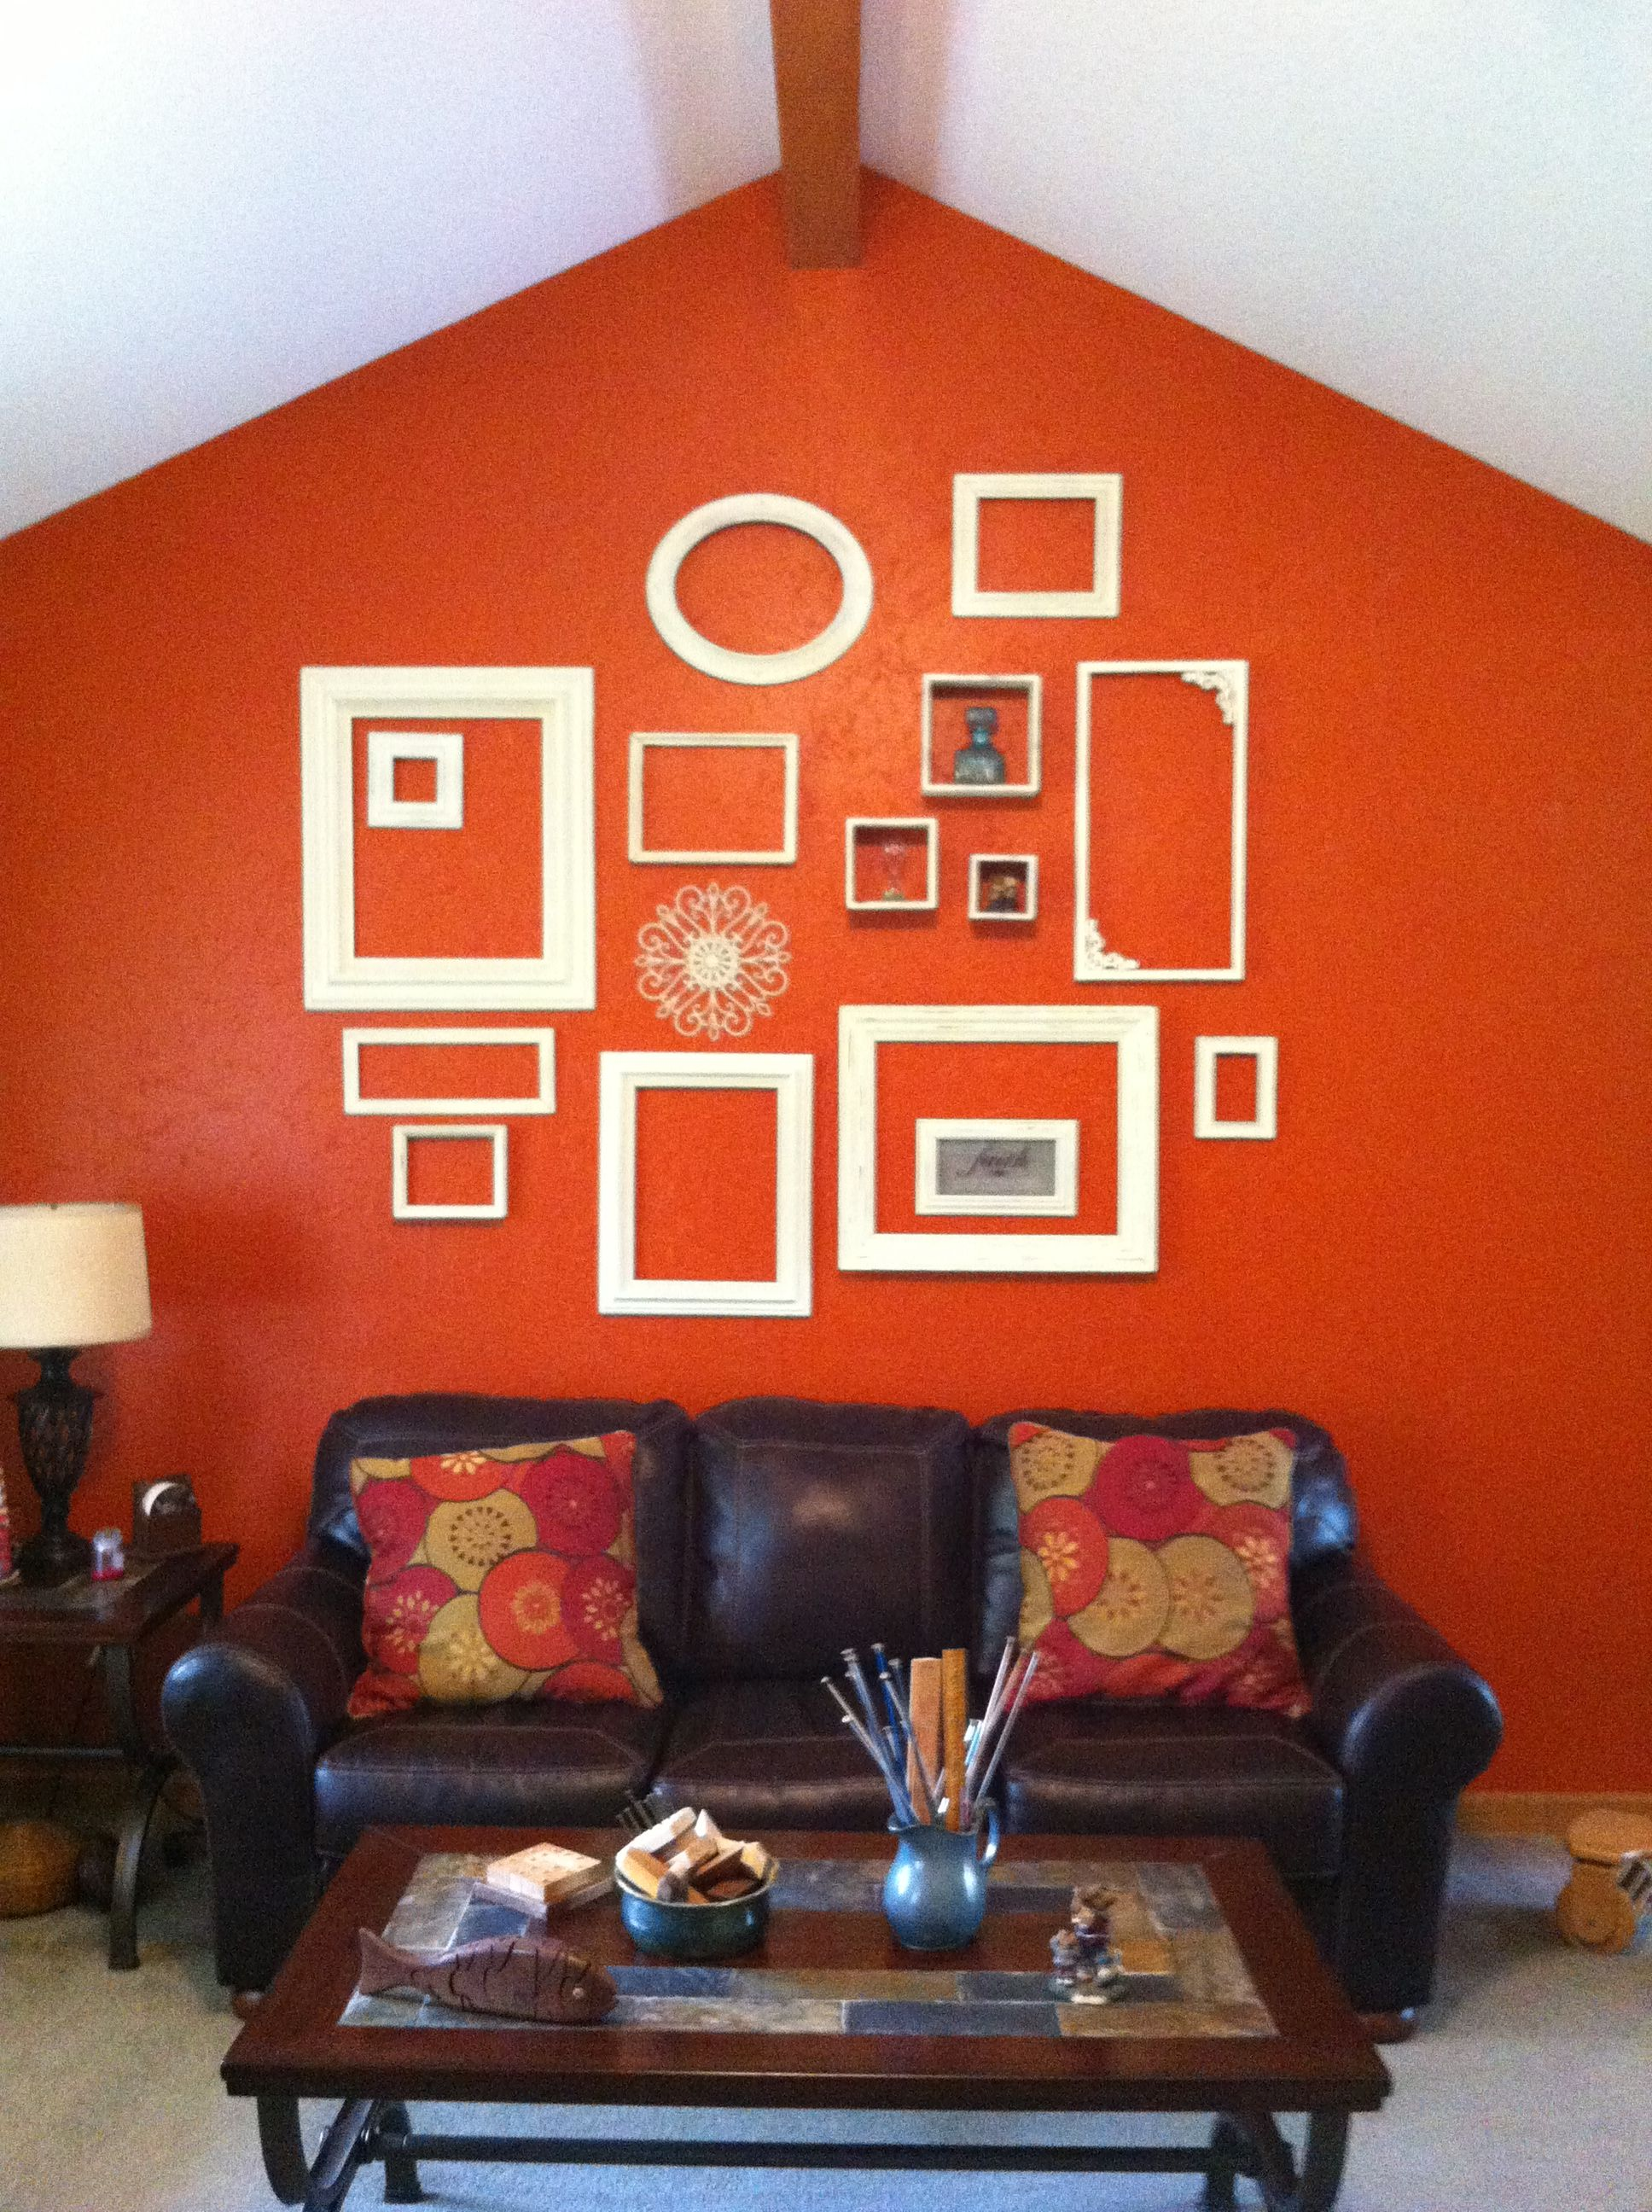 My Living Room Wall Inspired By Pinterest Burnt Orange Wall With Empty Frames Painted Ivory And Then D Living Room Paint Living Room Colors Room Paint Colors